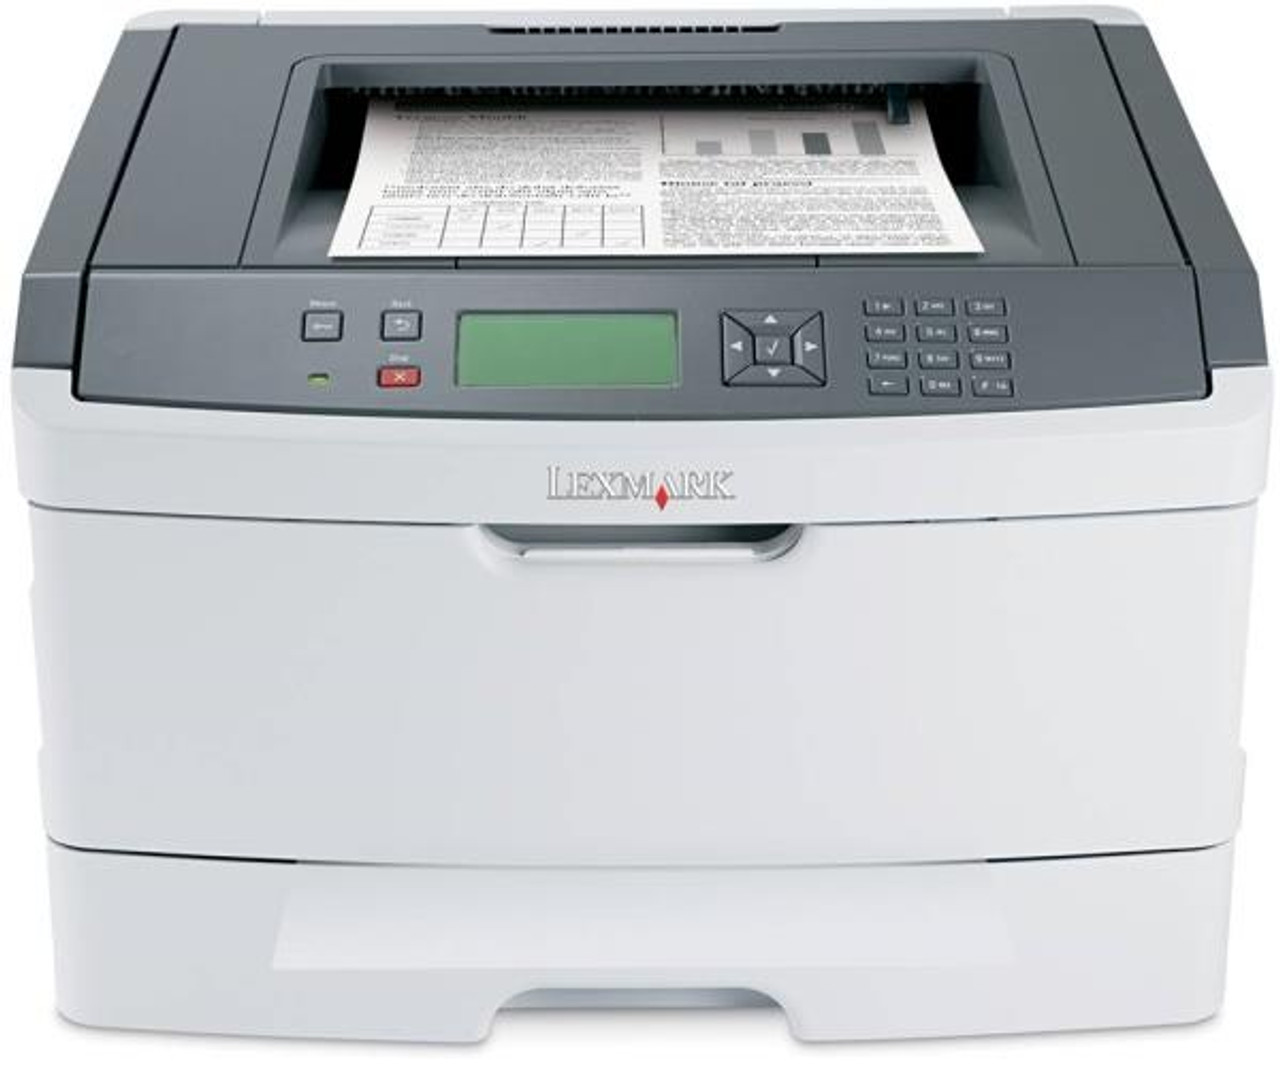 Lexmark E460dn - 34S0700 - Lexmark Laser Printer for sale